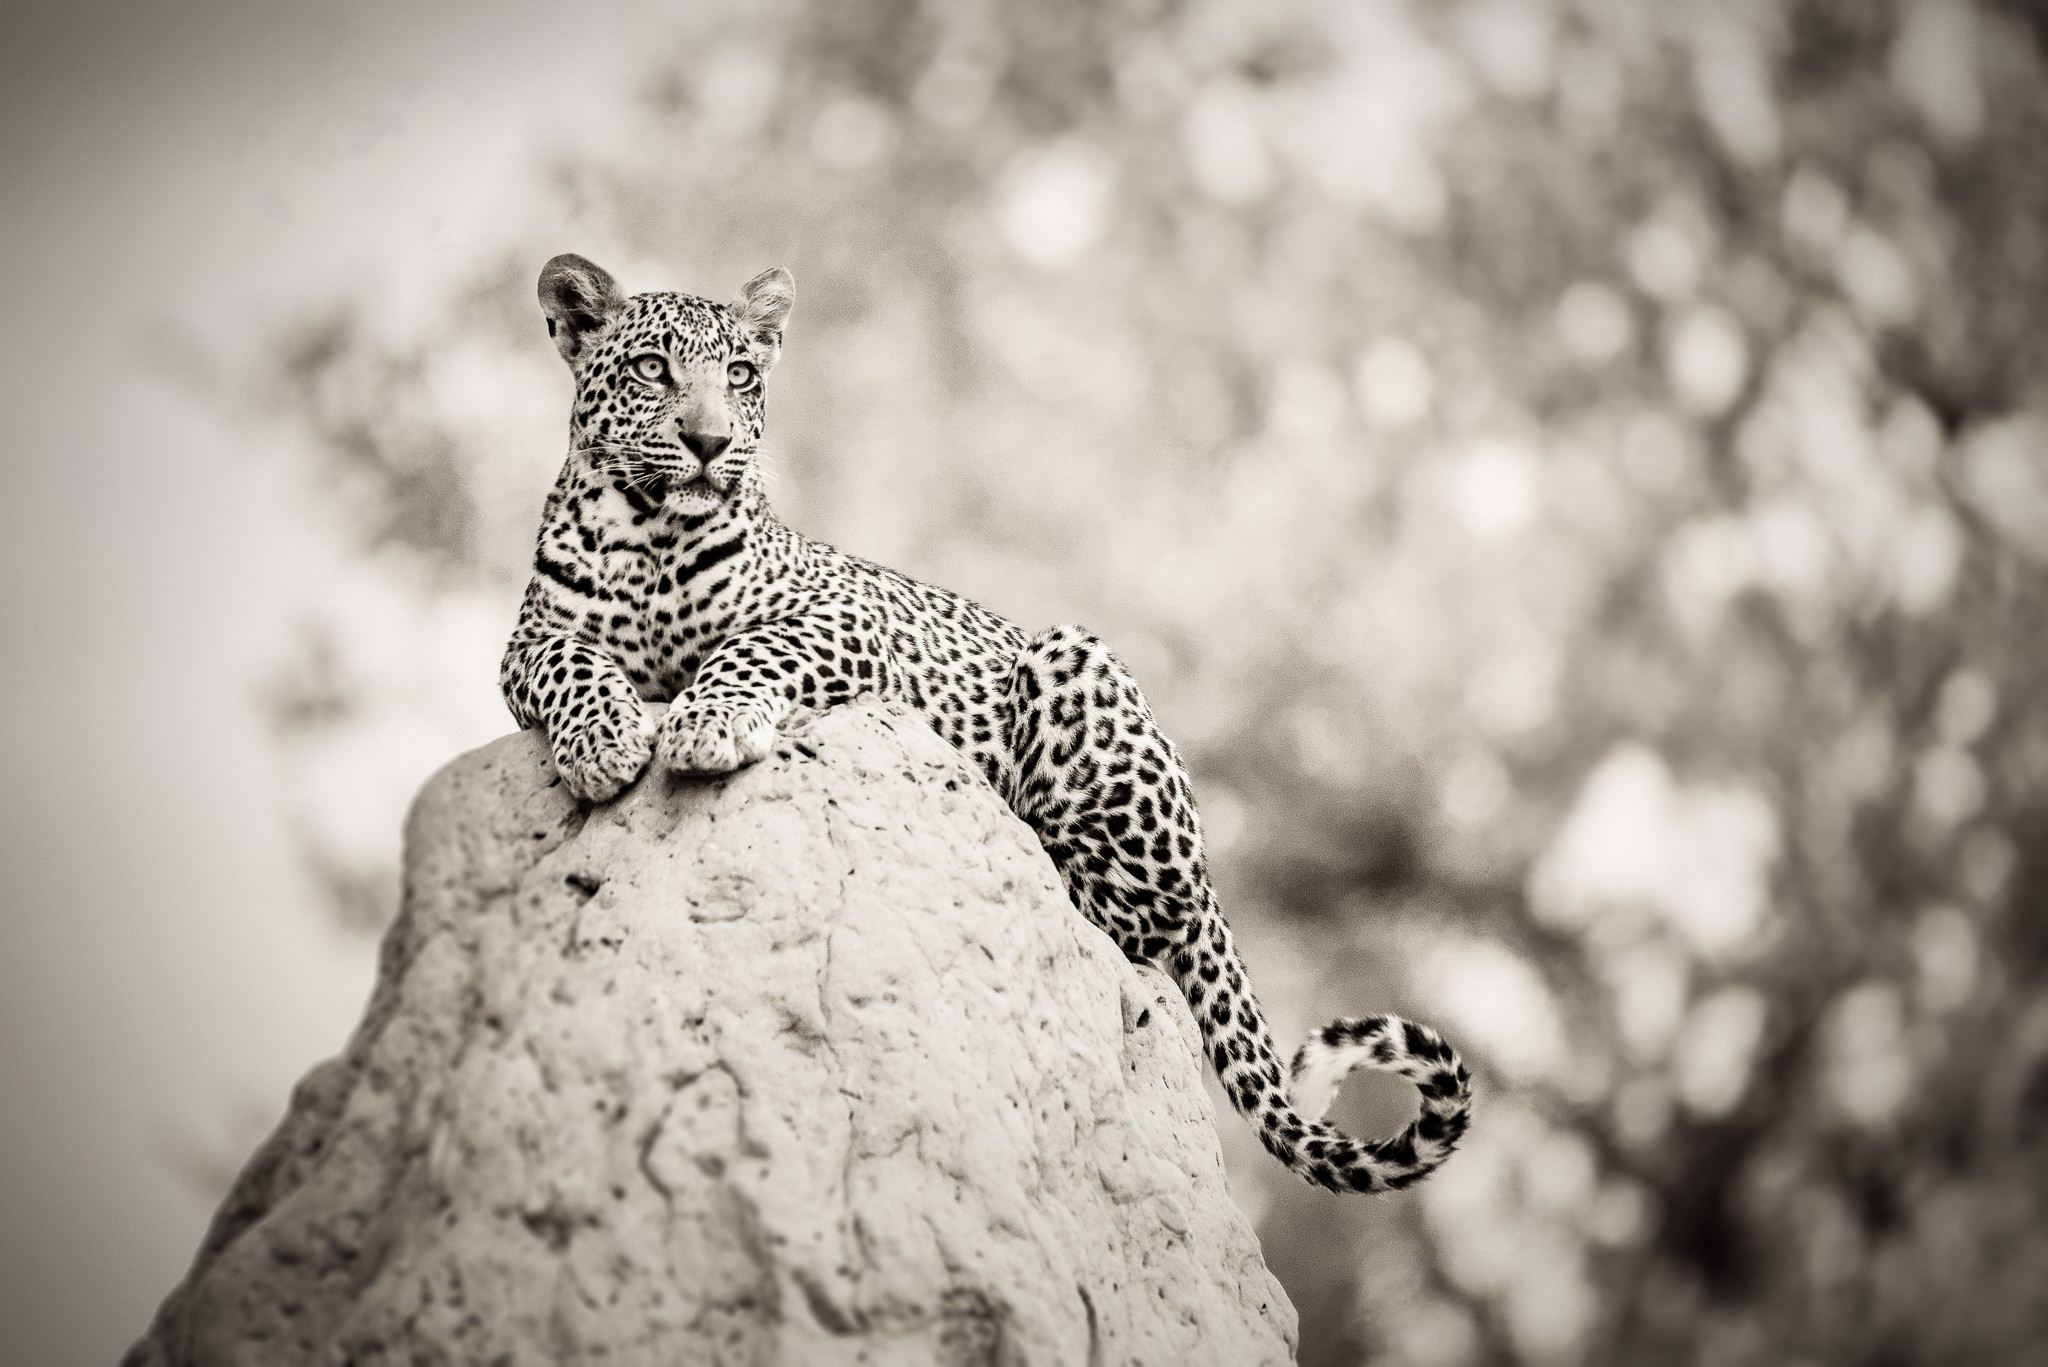 Leopard on Termite Mound